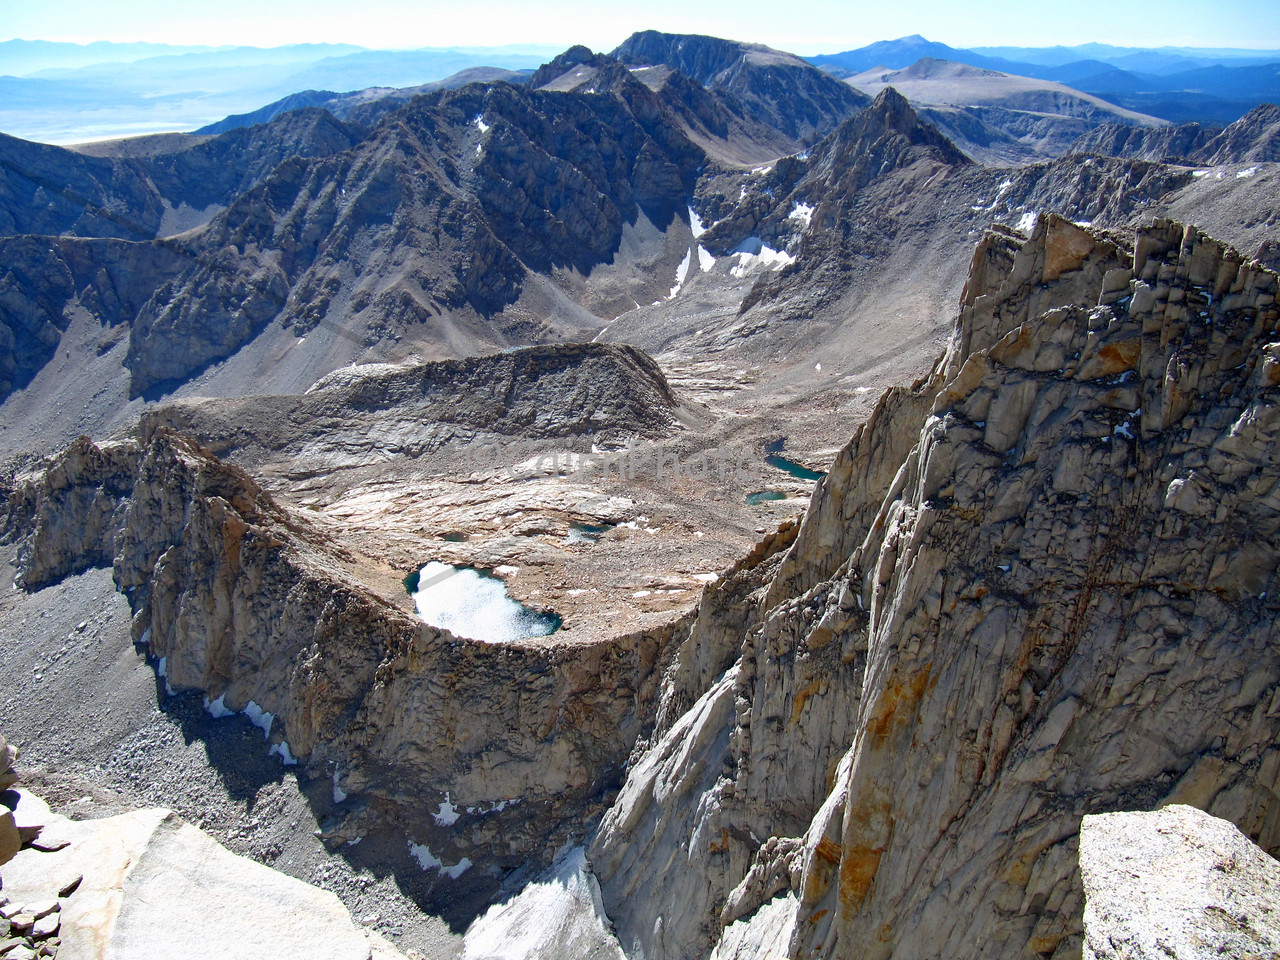 The view from Mt. Whitney, the highest mountain in the 48 contiguous states at 14,505 feet high.  Mt. Whitney is also the start and/or ending point of the John Muir Trail.